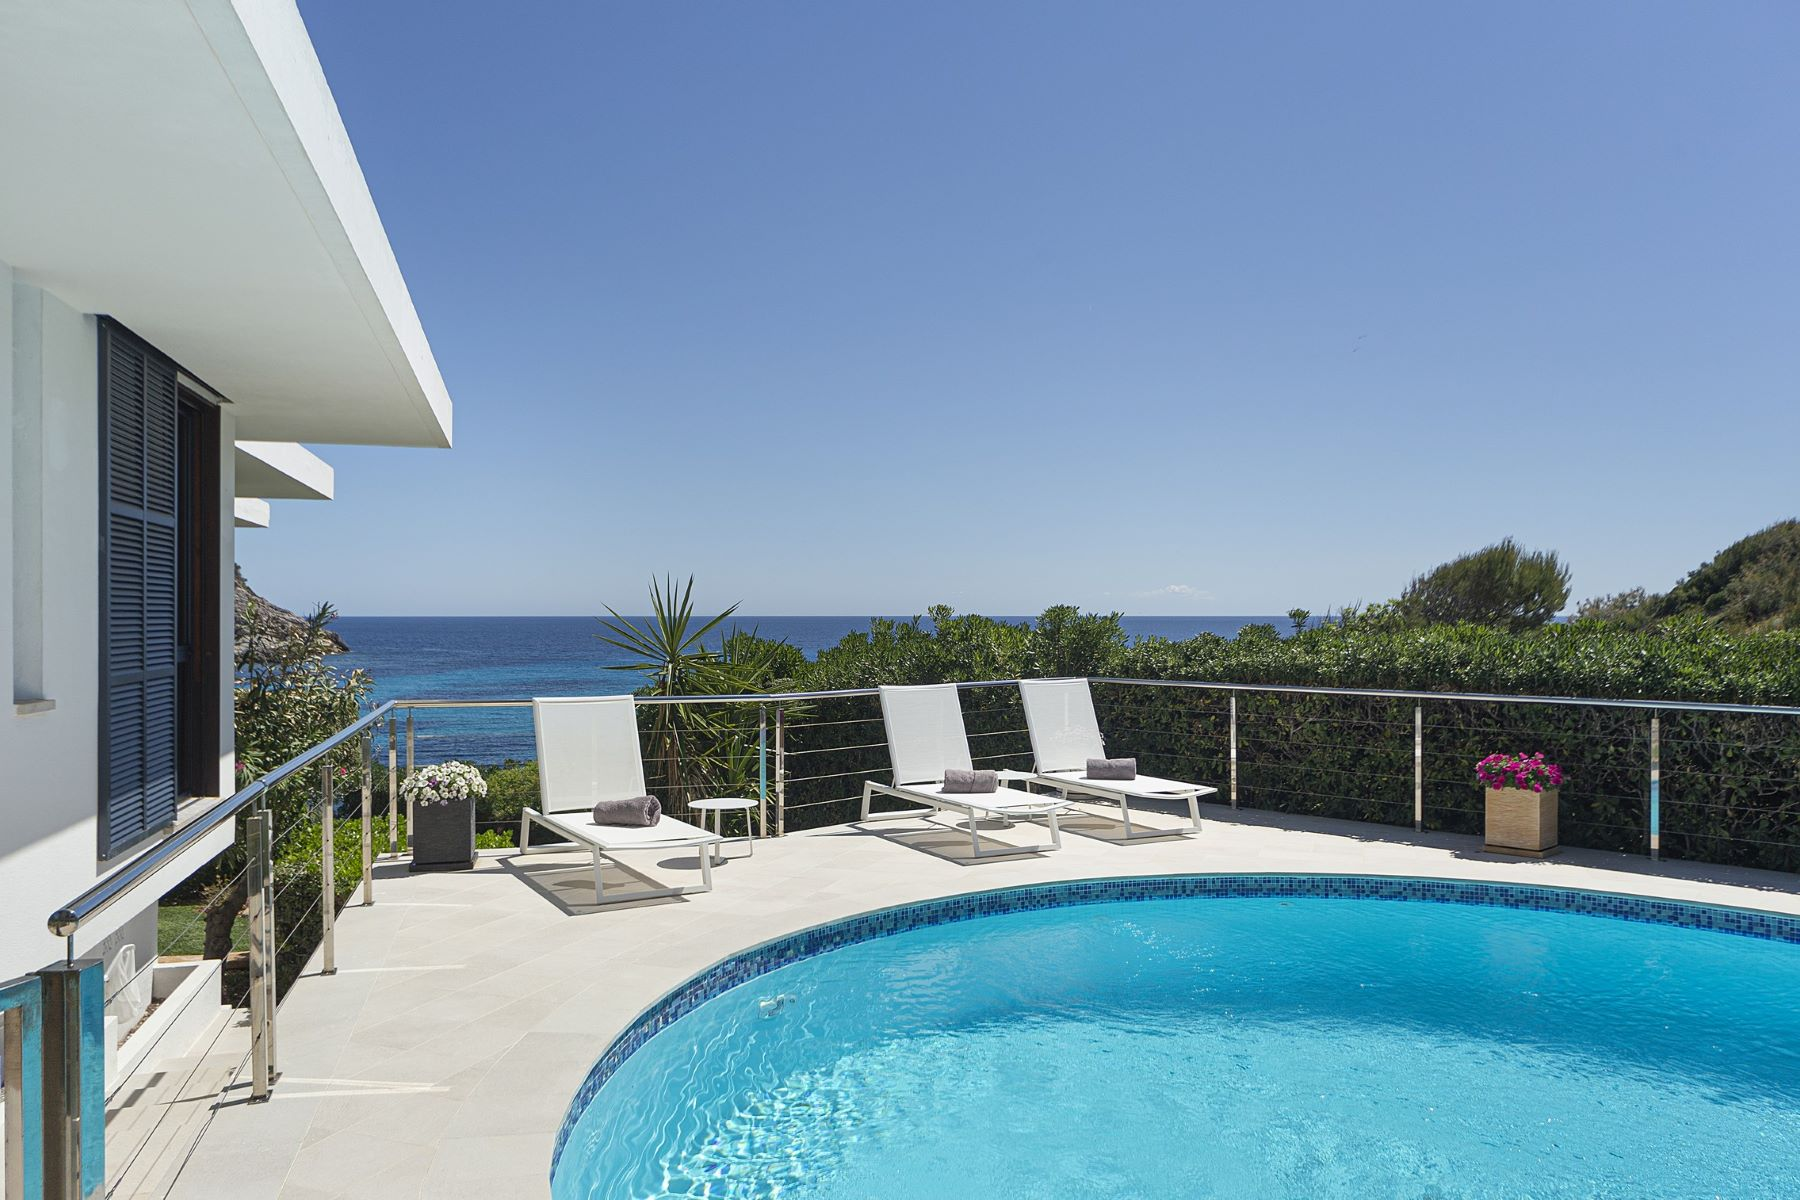 Single Family Homes for Rent at Luxurious villa for rent in cala sa Font Other Balearic Islands, Balearic Islands Spain